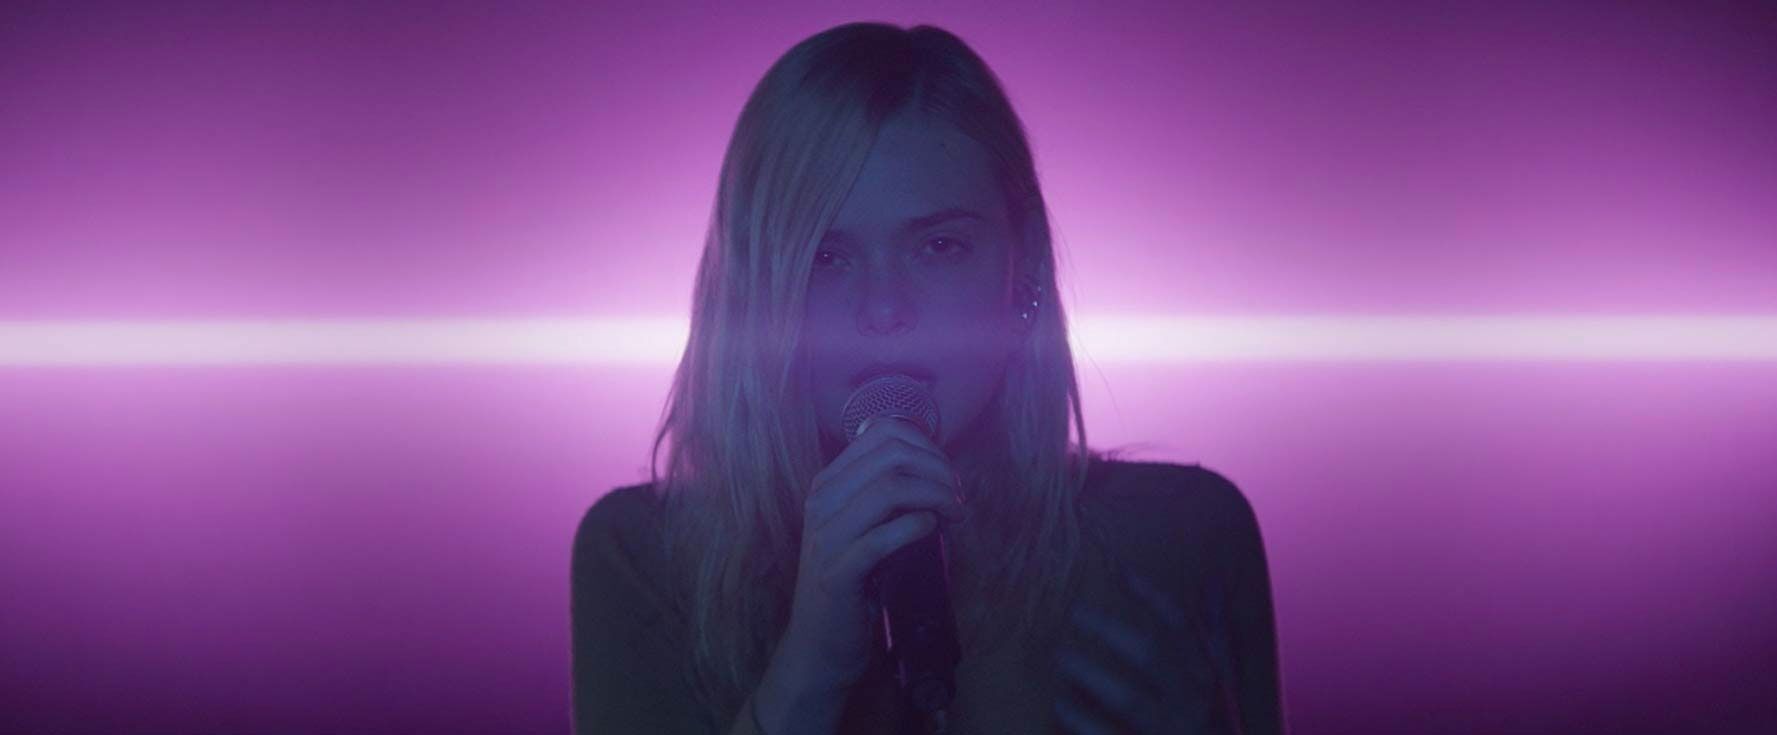 SXSW review: Teen Spirit is a dazzling backstage musical